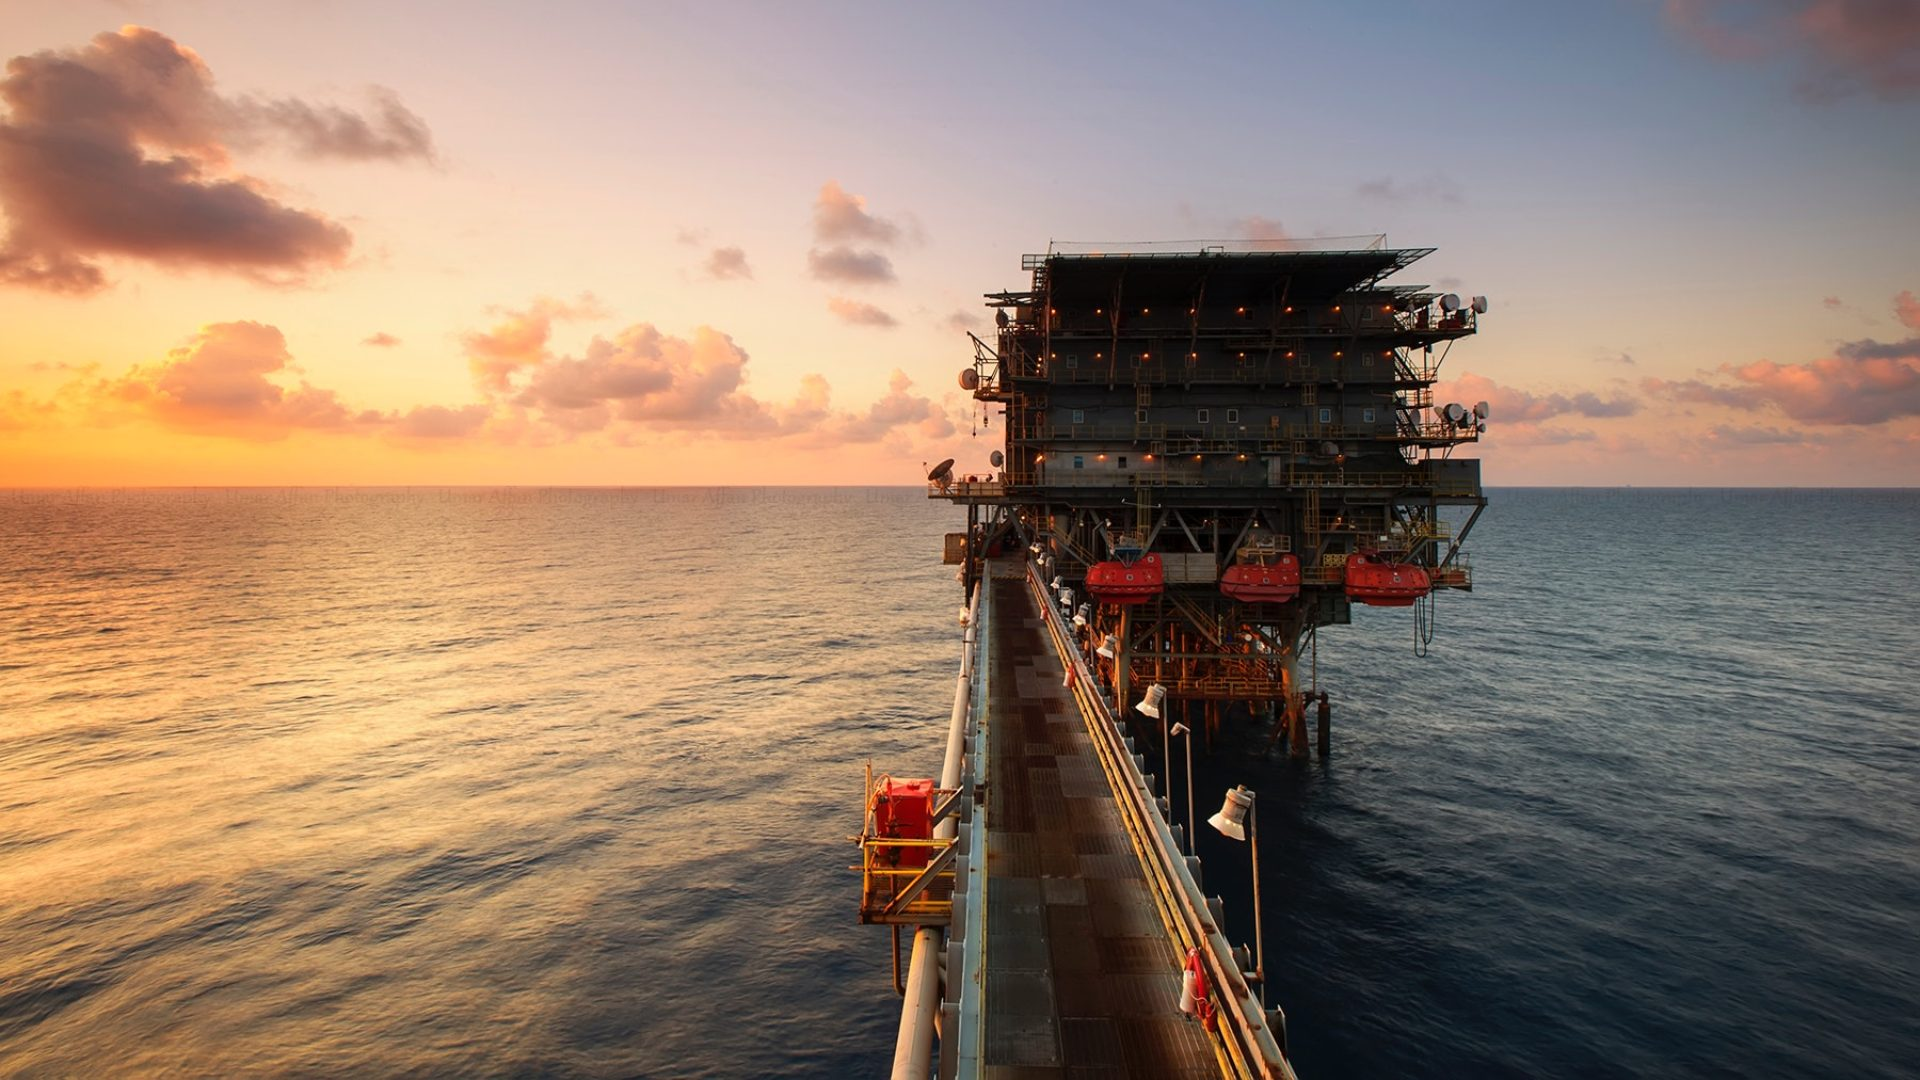 Jersey Oil & Gas has completed a private placement of new shares